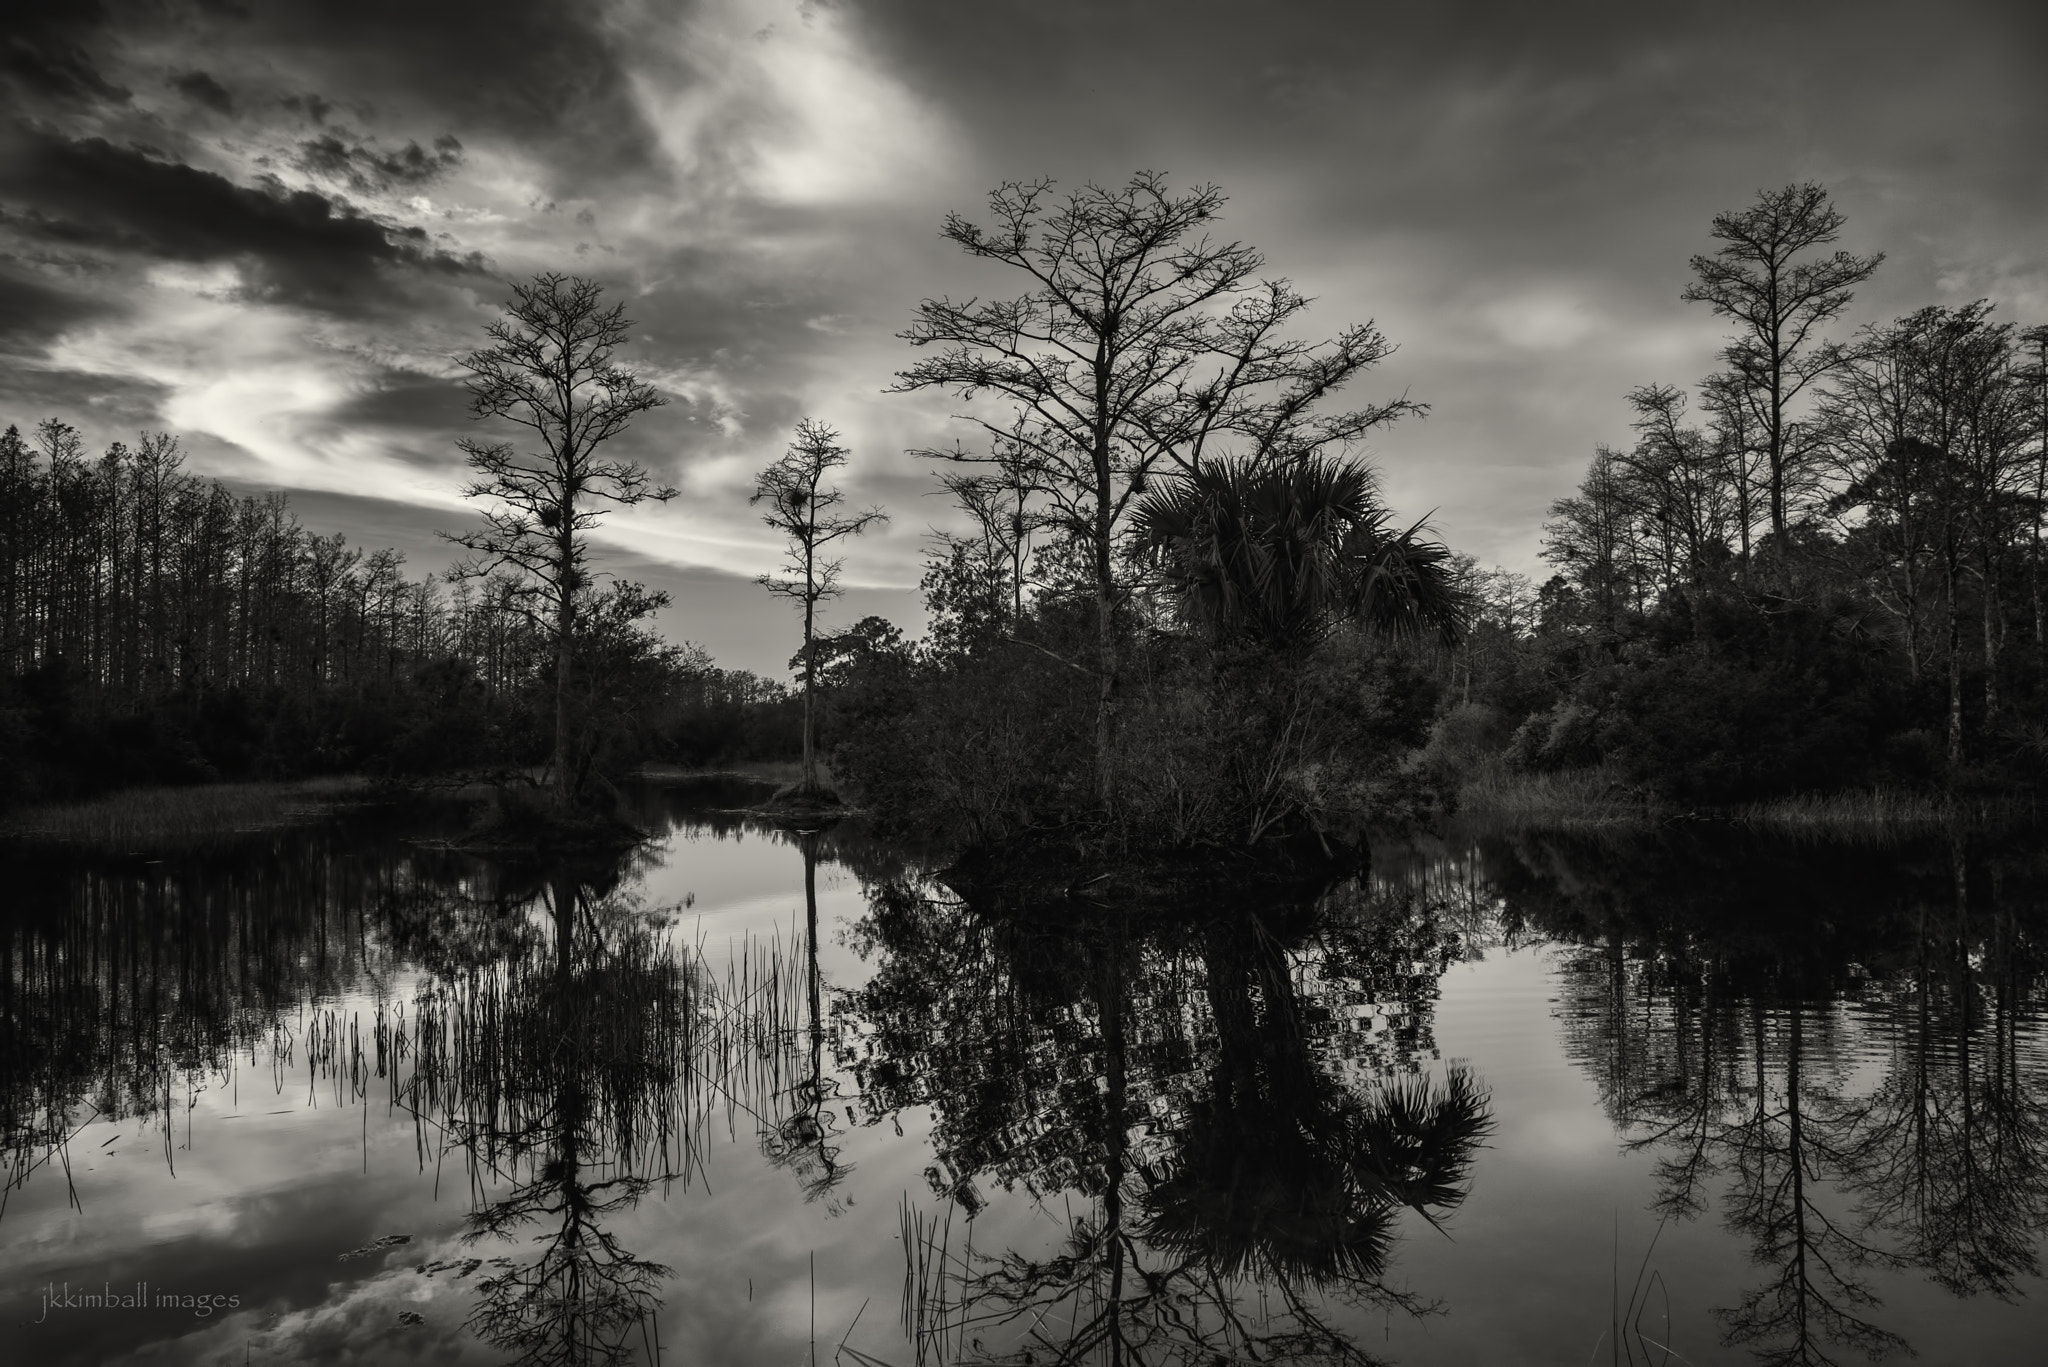 Photograph Ghosts of The Everglades by John Kimball on 500px